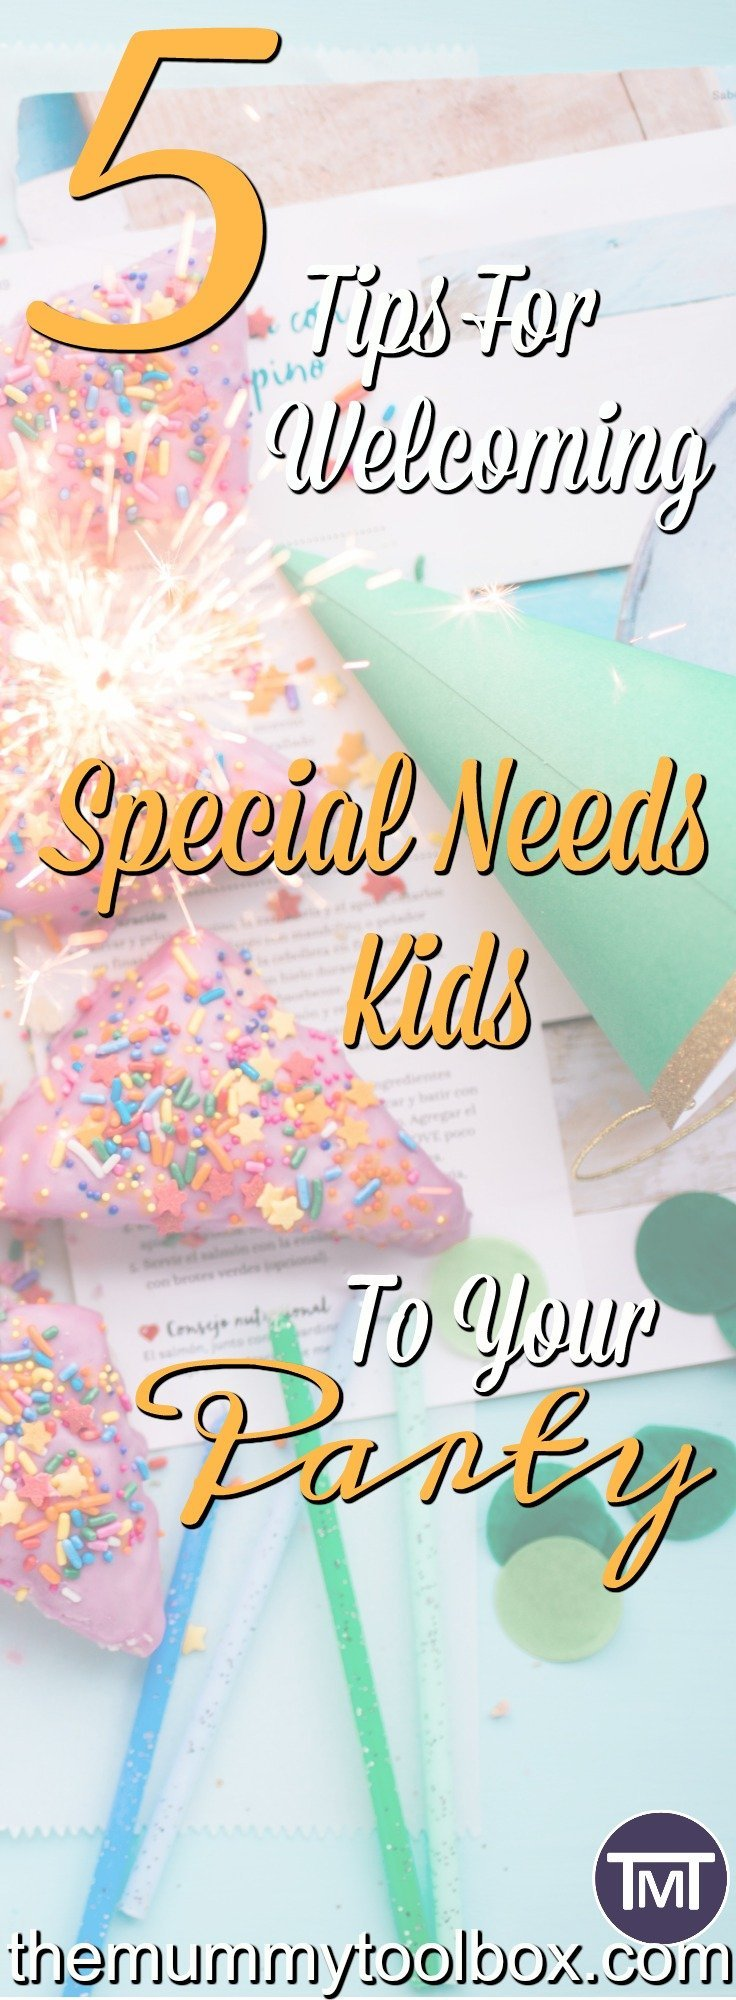 Once you start school it's basically party central. This guest post gives you tips to help you make special needs kids feel included and have a good time.